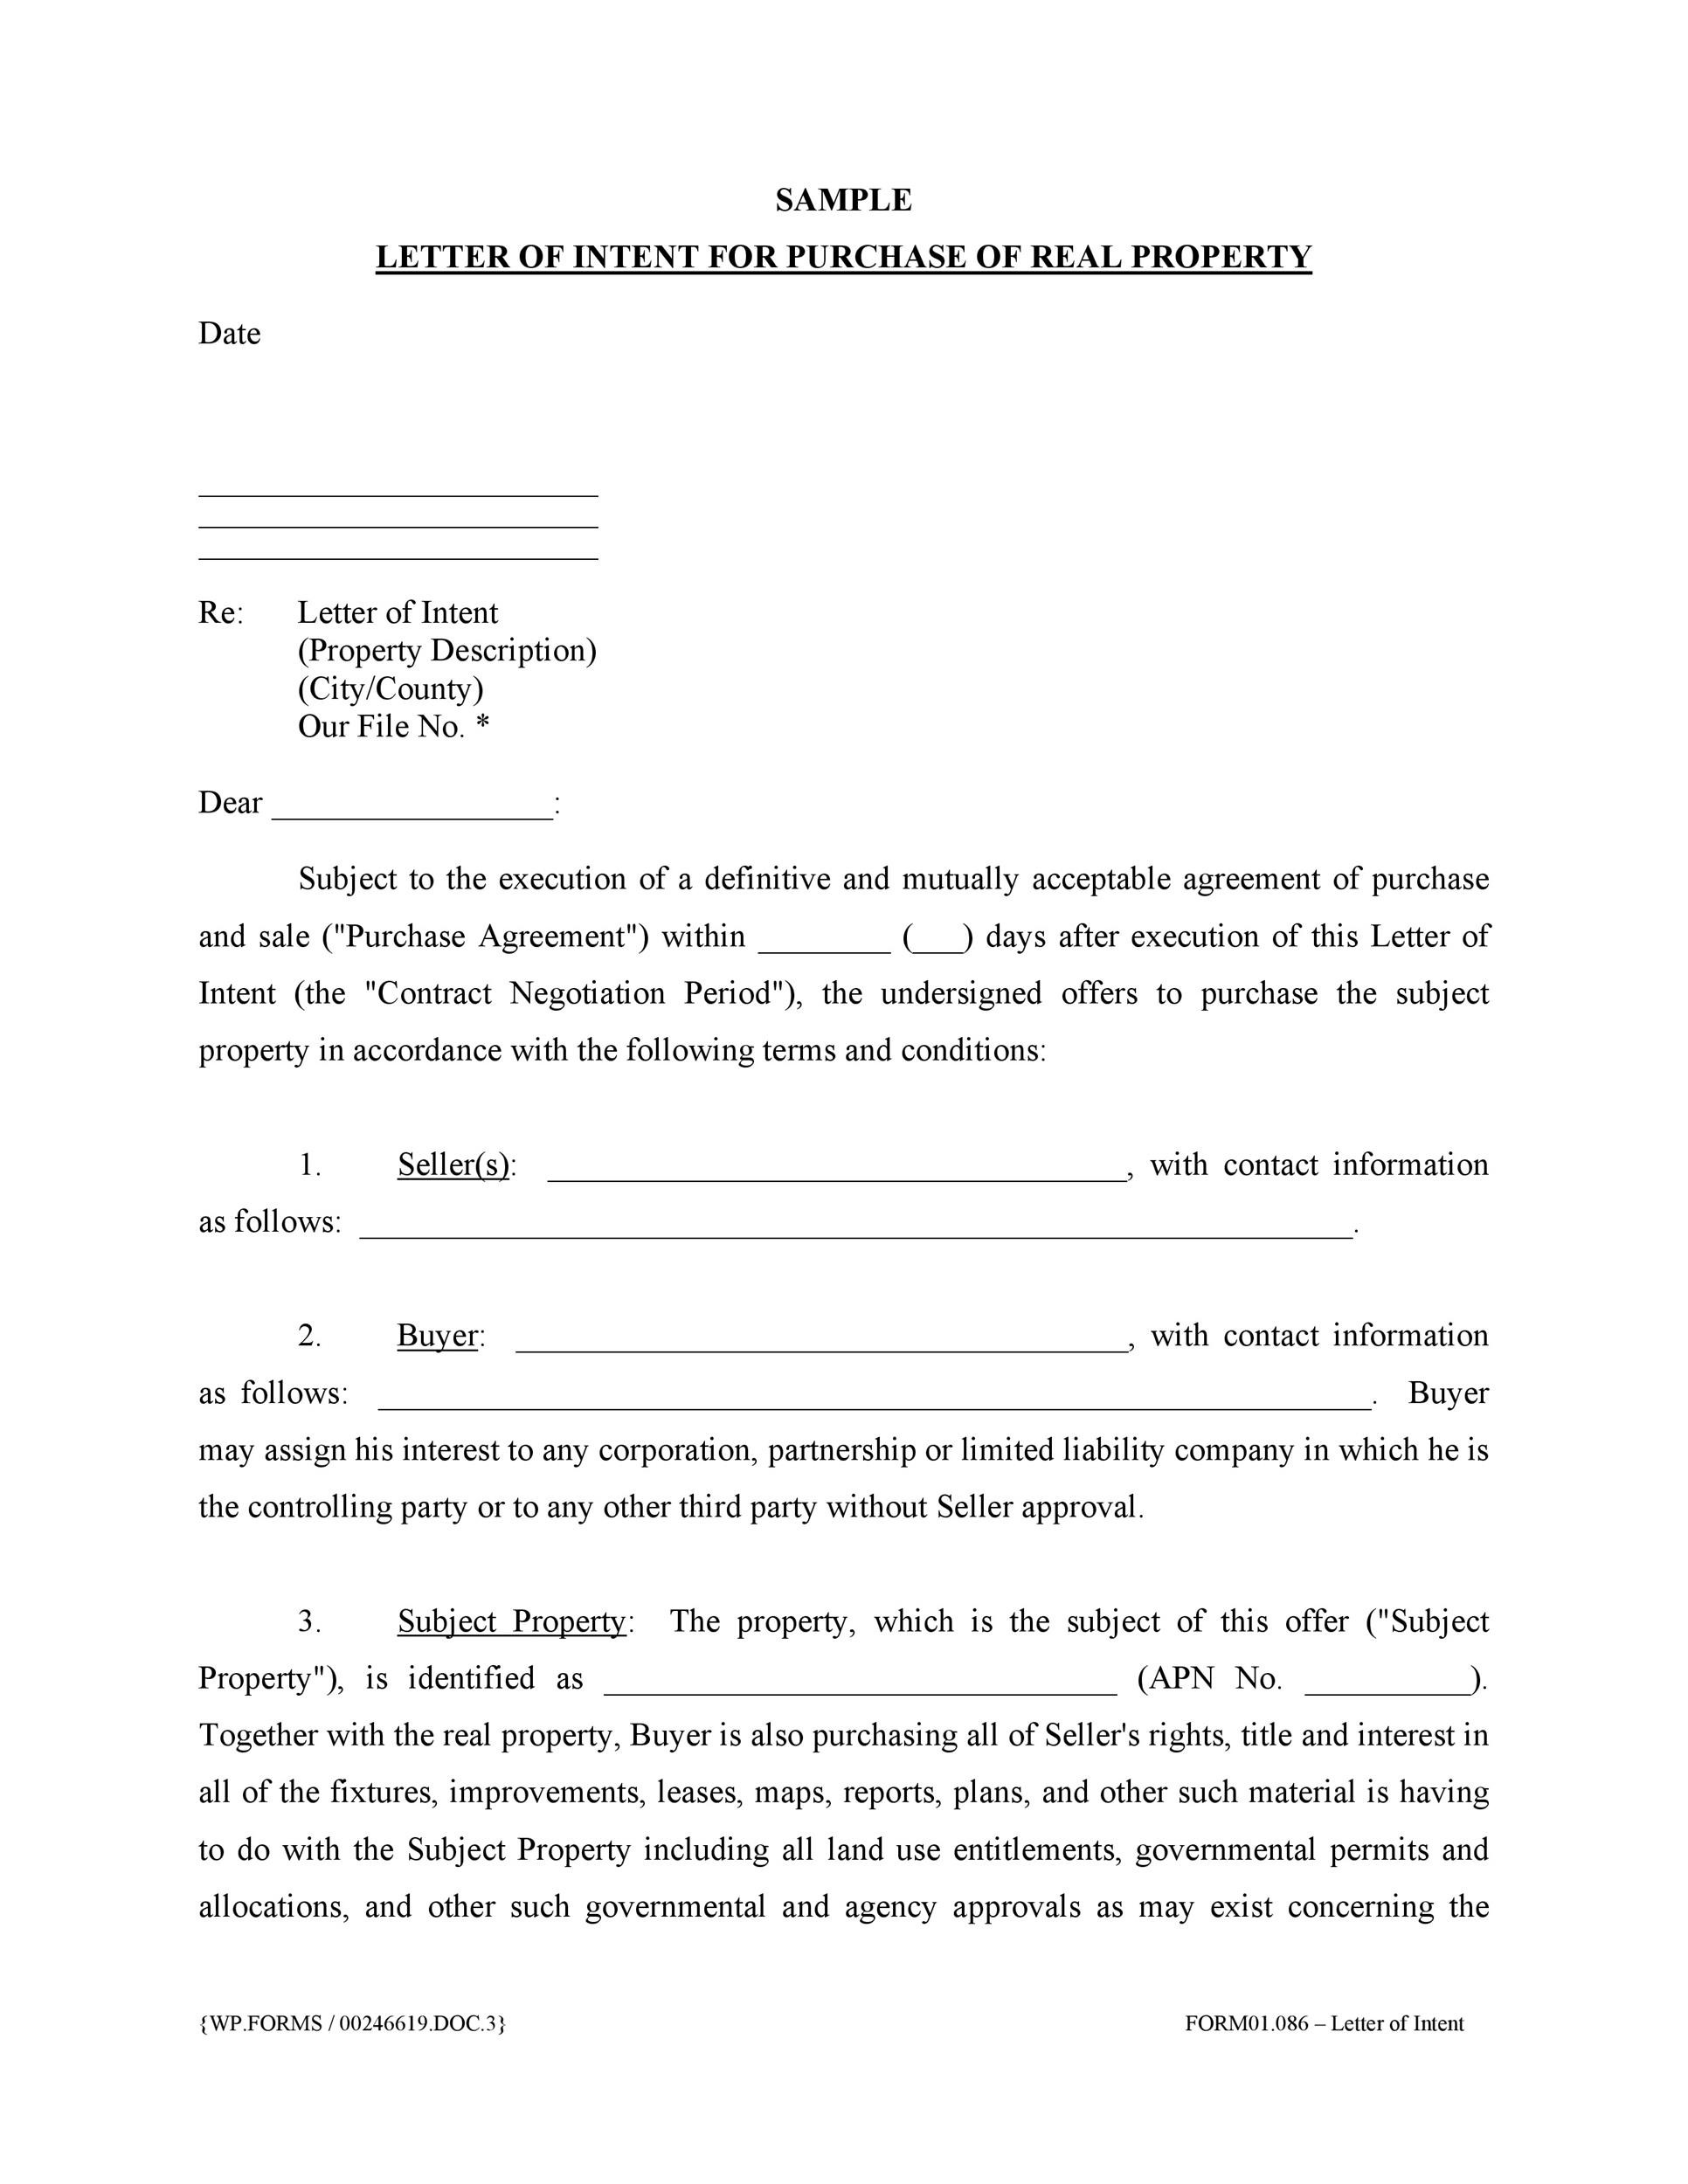 doc 400518 sample letter of intent to purchase a